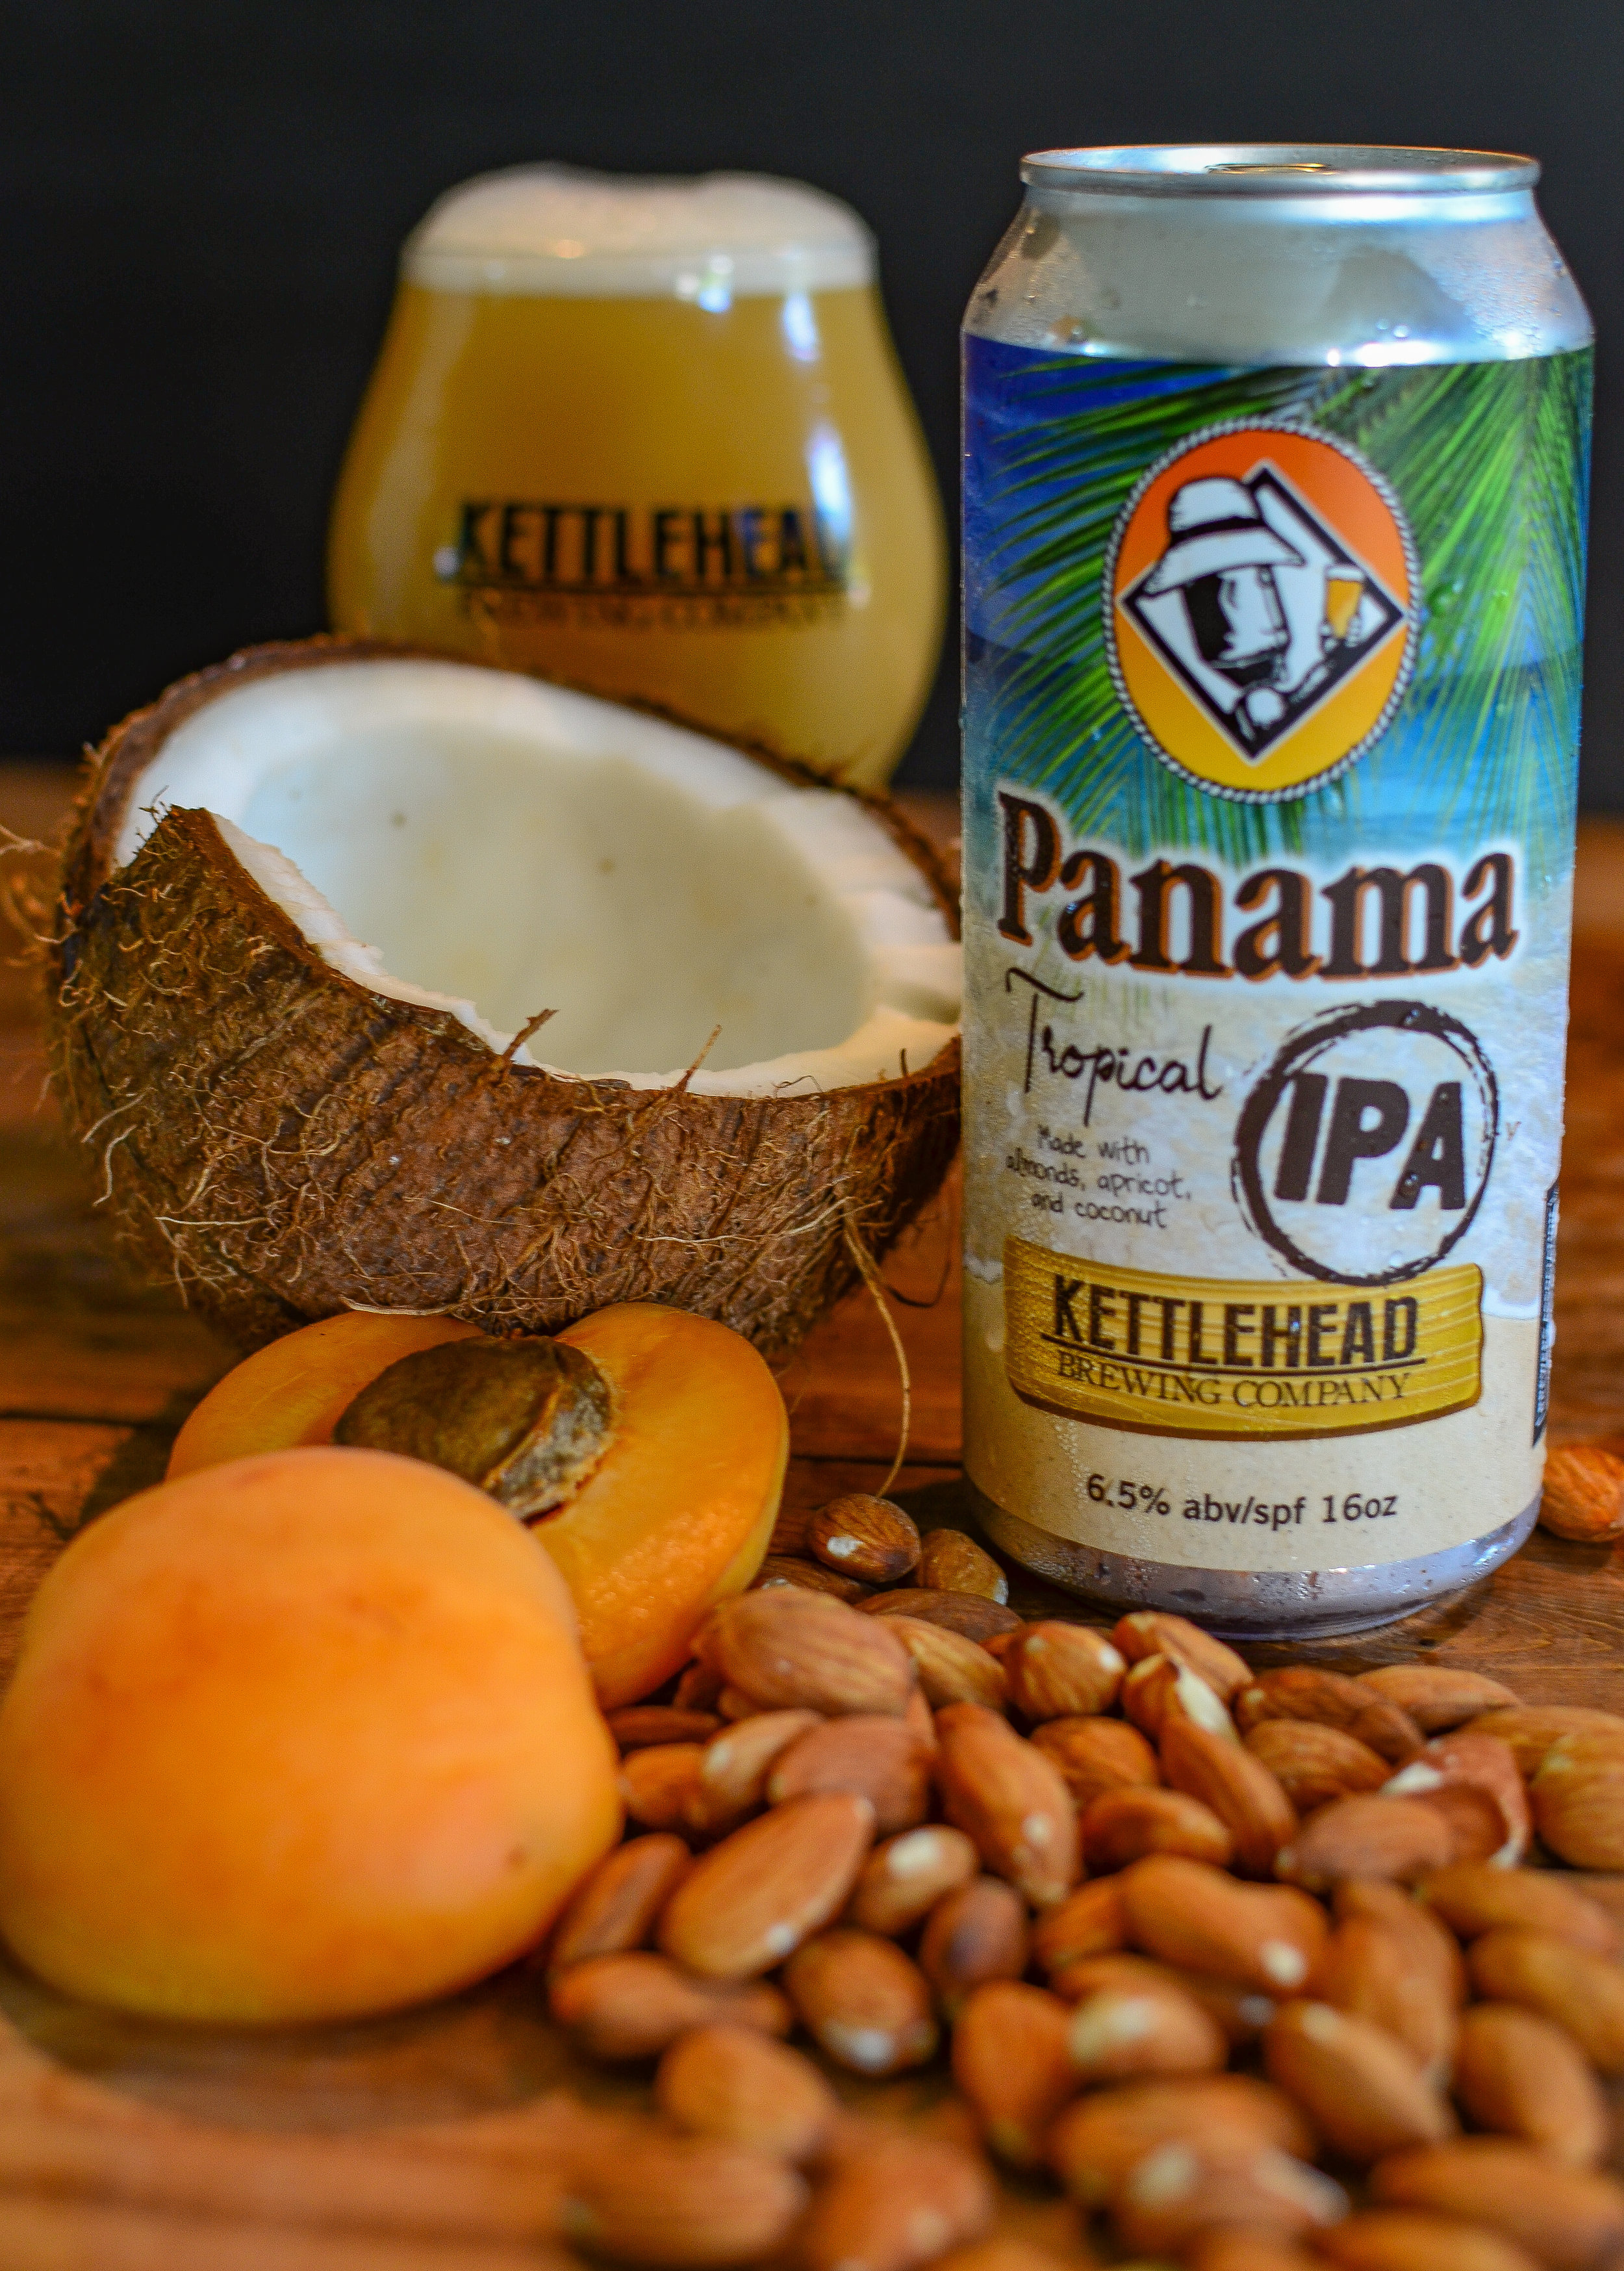 Panama, IPA 6.5% - An island-inspired beer, brewed with almonds, toasted coconut, apricot, and a mix of juicy hops with flavors of melon and citrus.